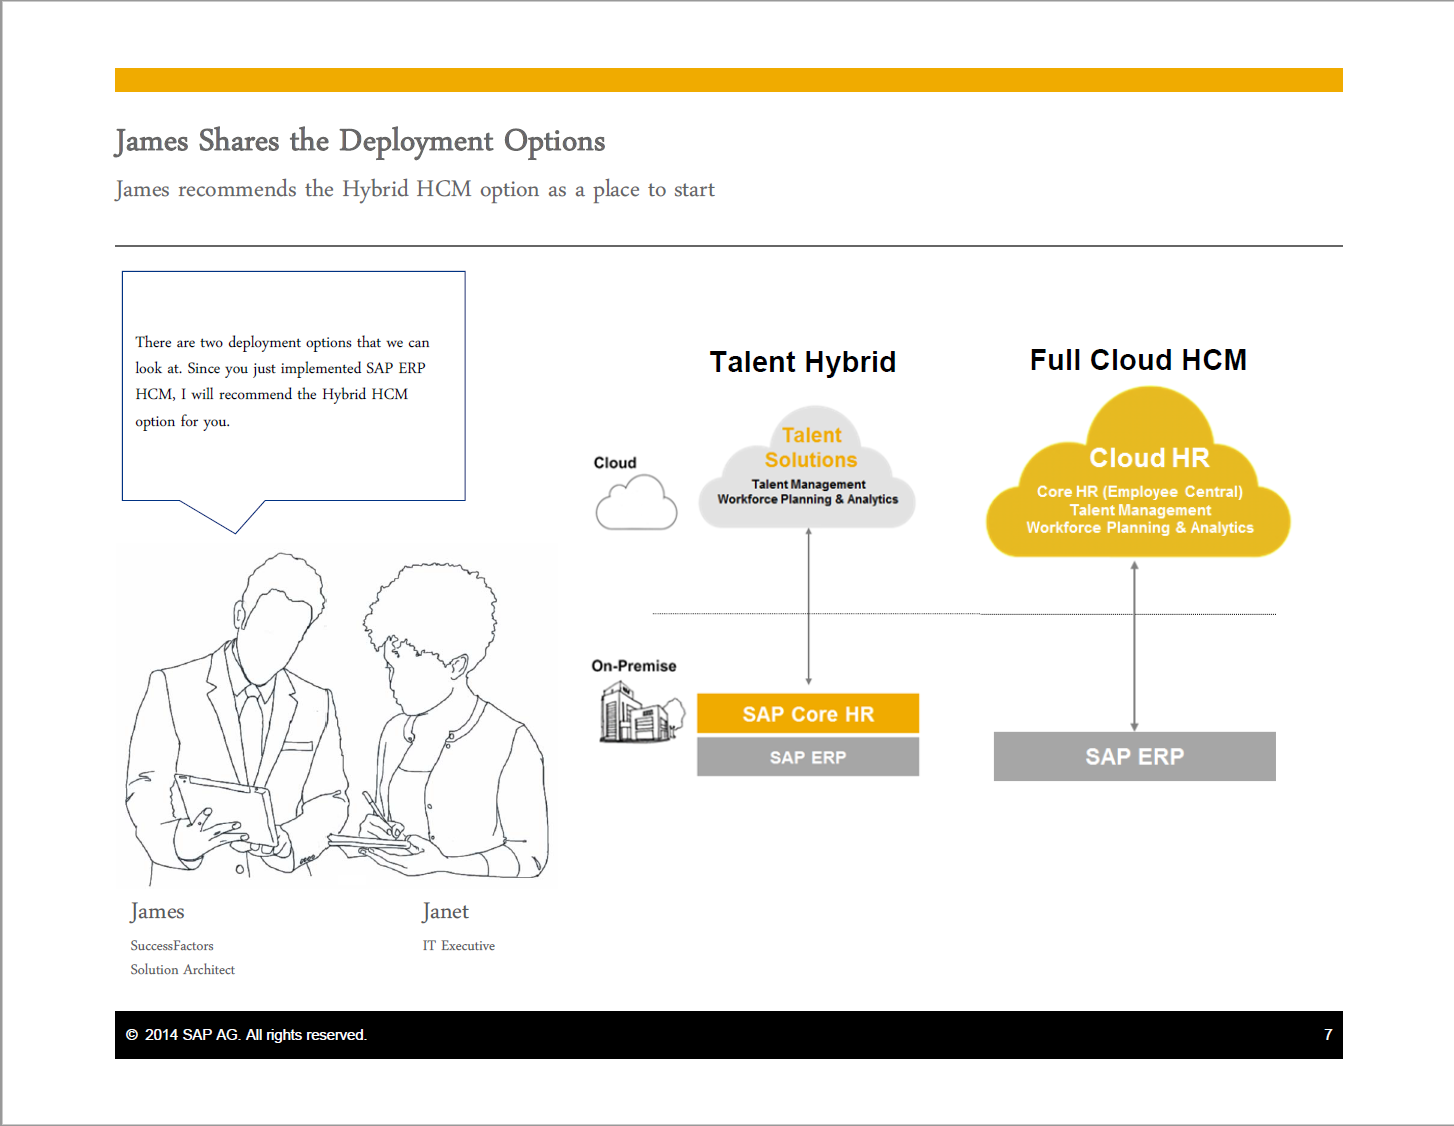 SAP created a new landscape model called the Talent Hybrid